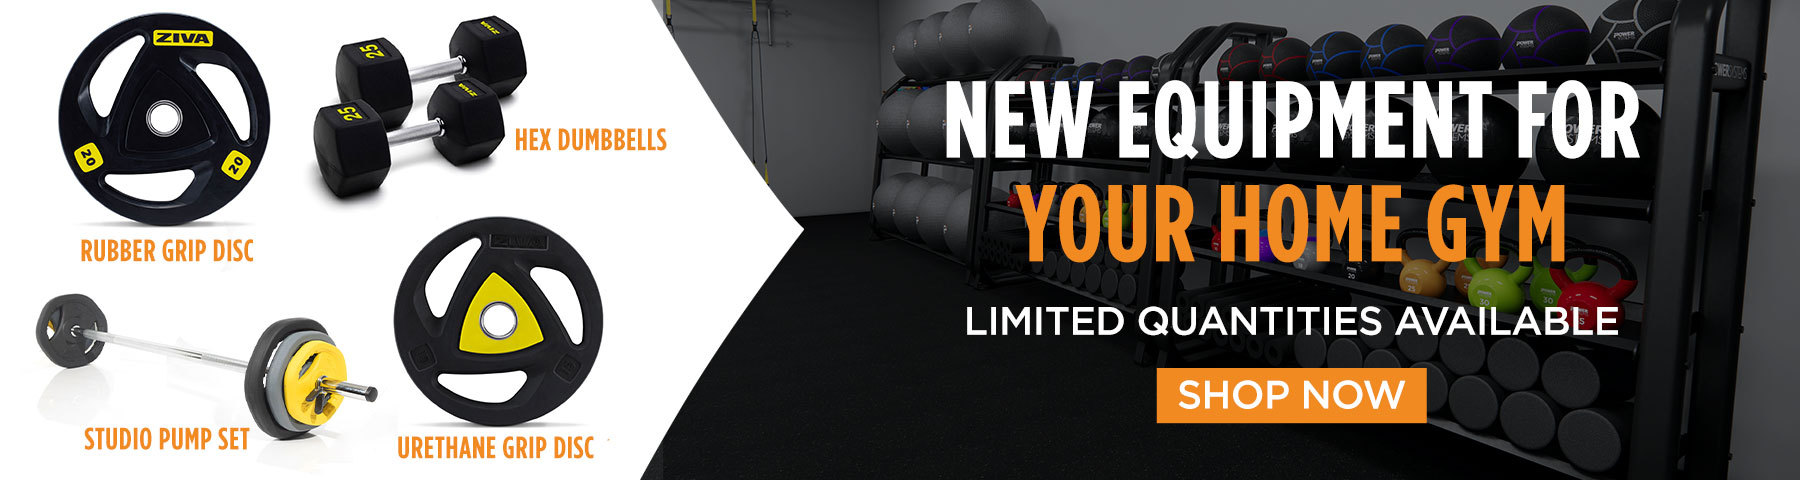 new equipment for your home gym